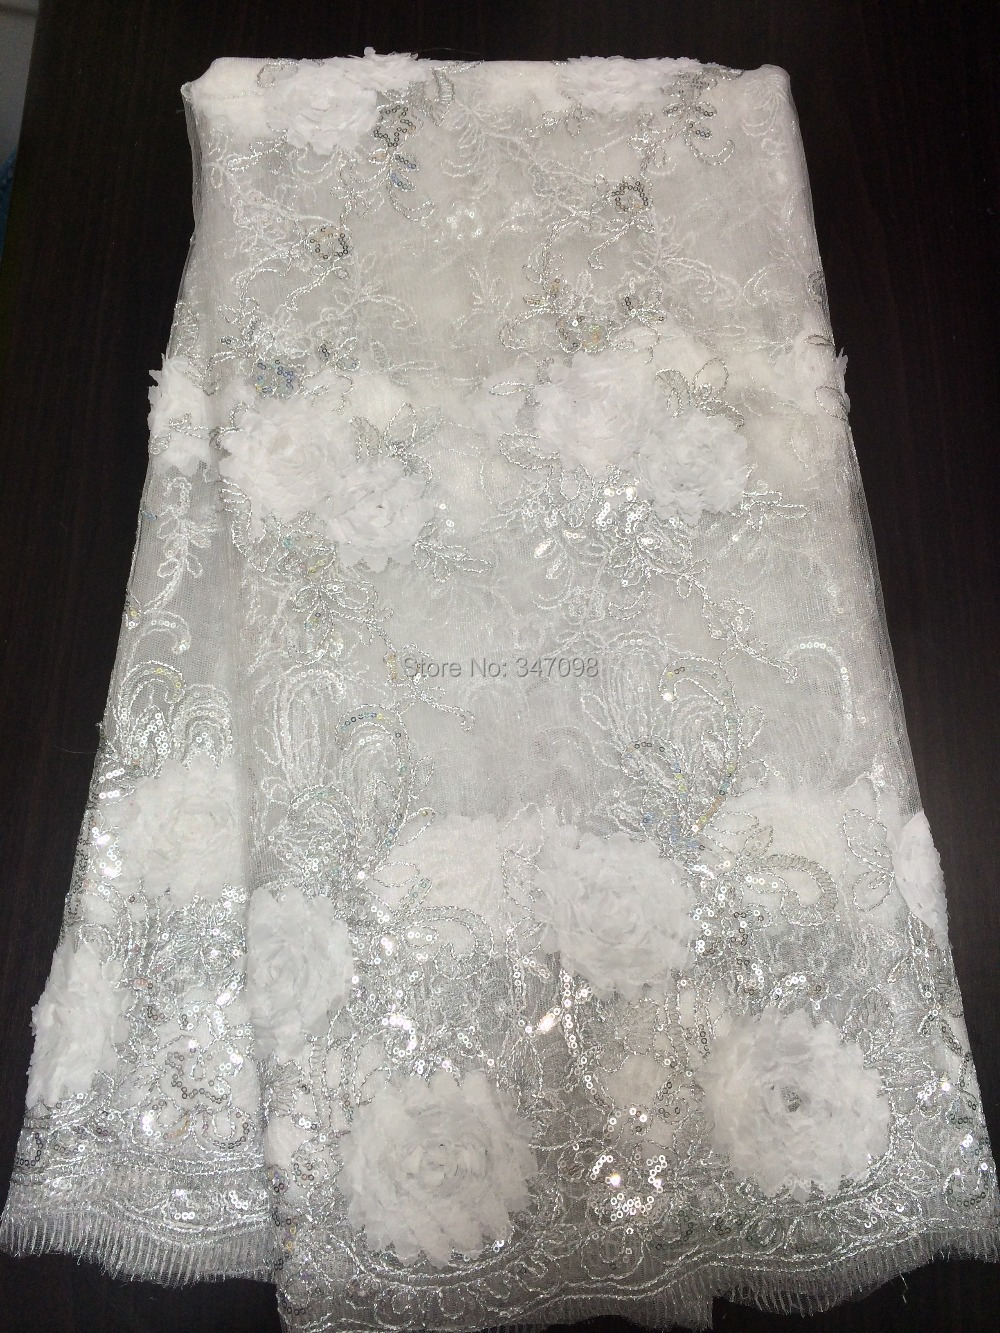 Free shipping white french net lace fabric african for White lace fabric for wedding dresses